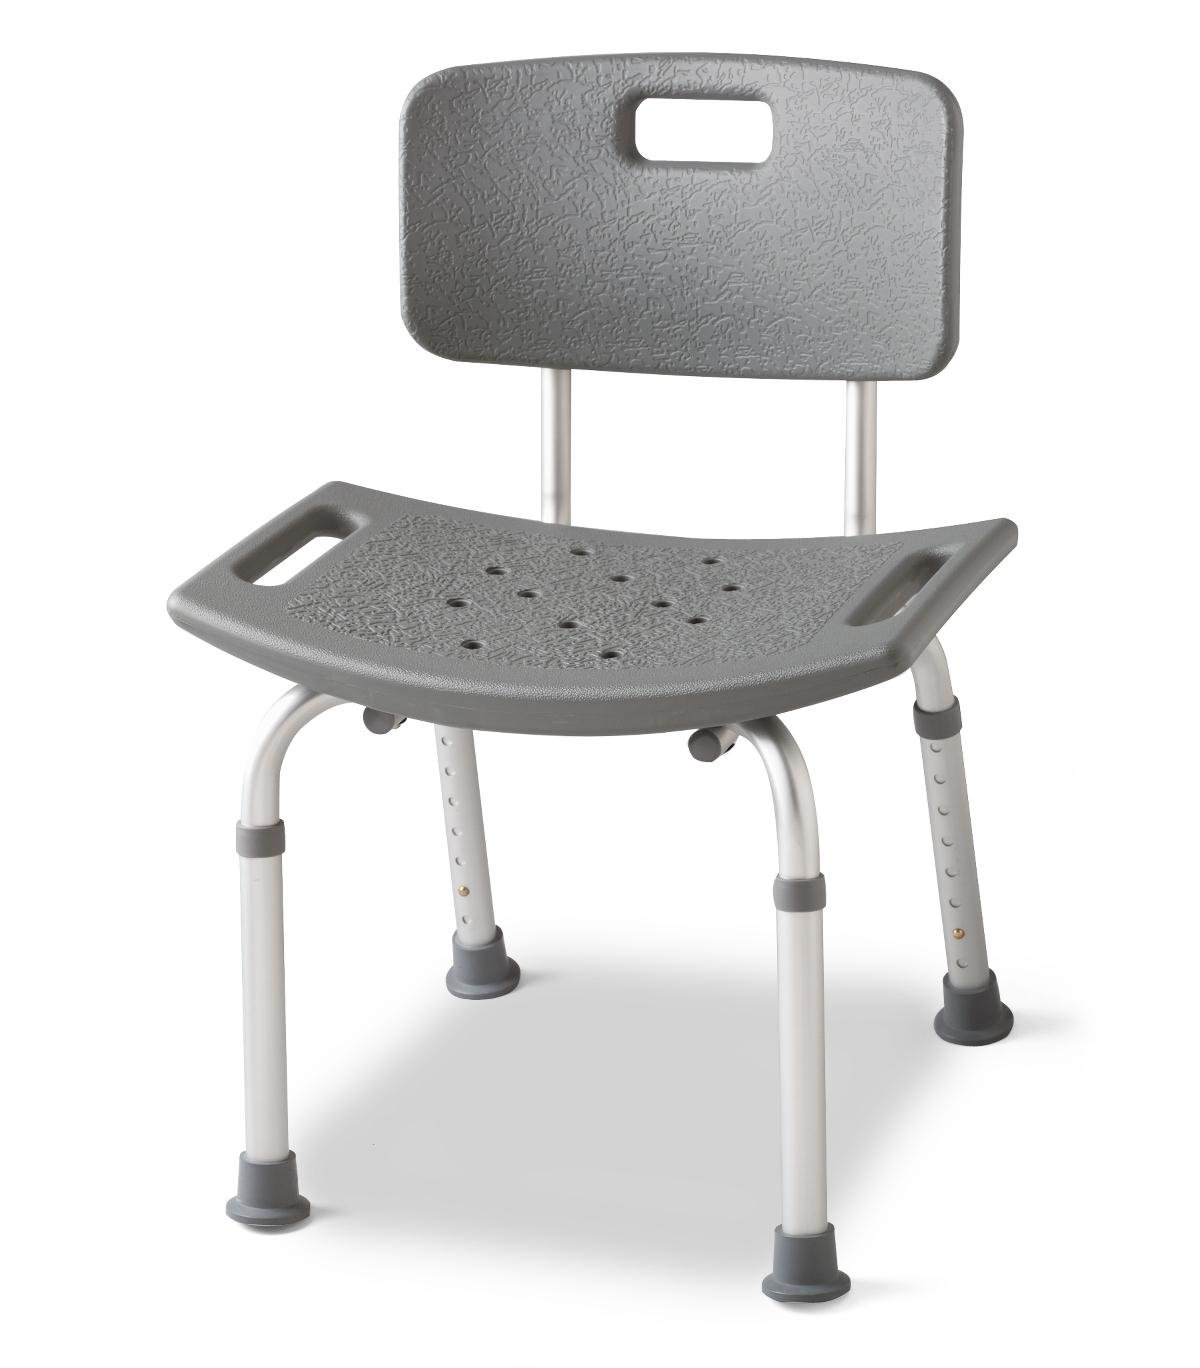 Medline Guardian Bath Bench with Back